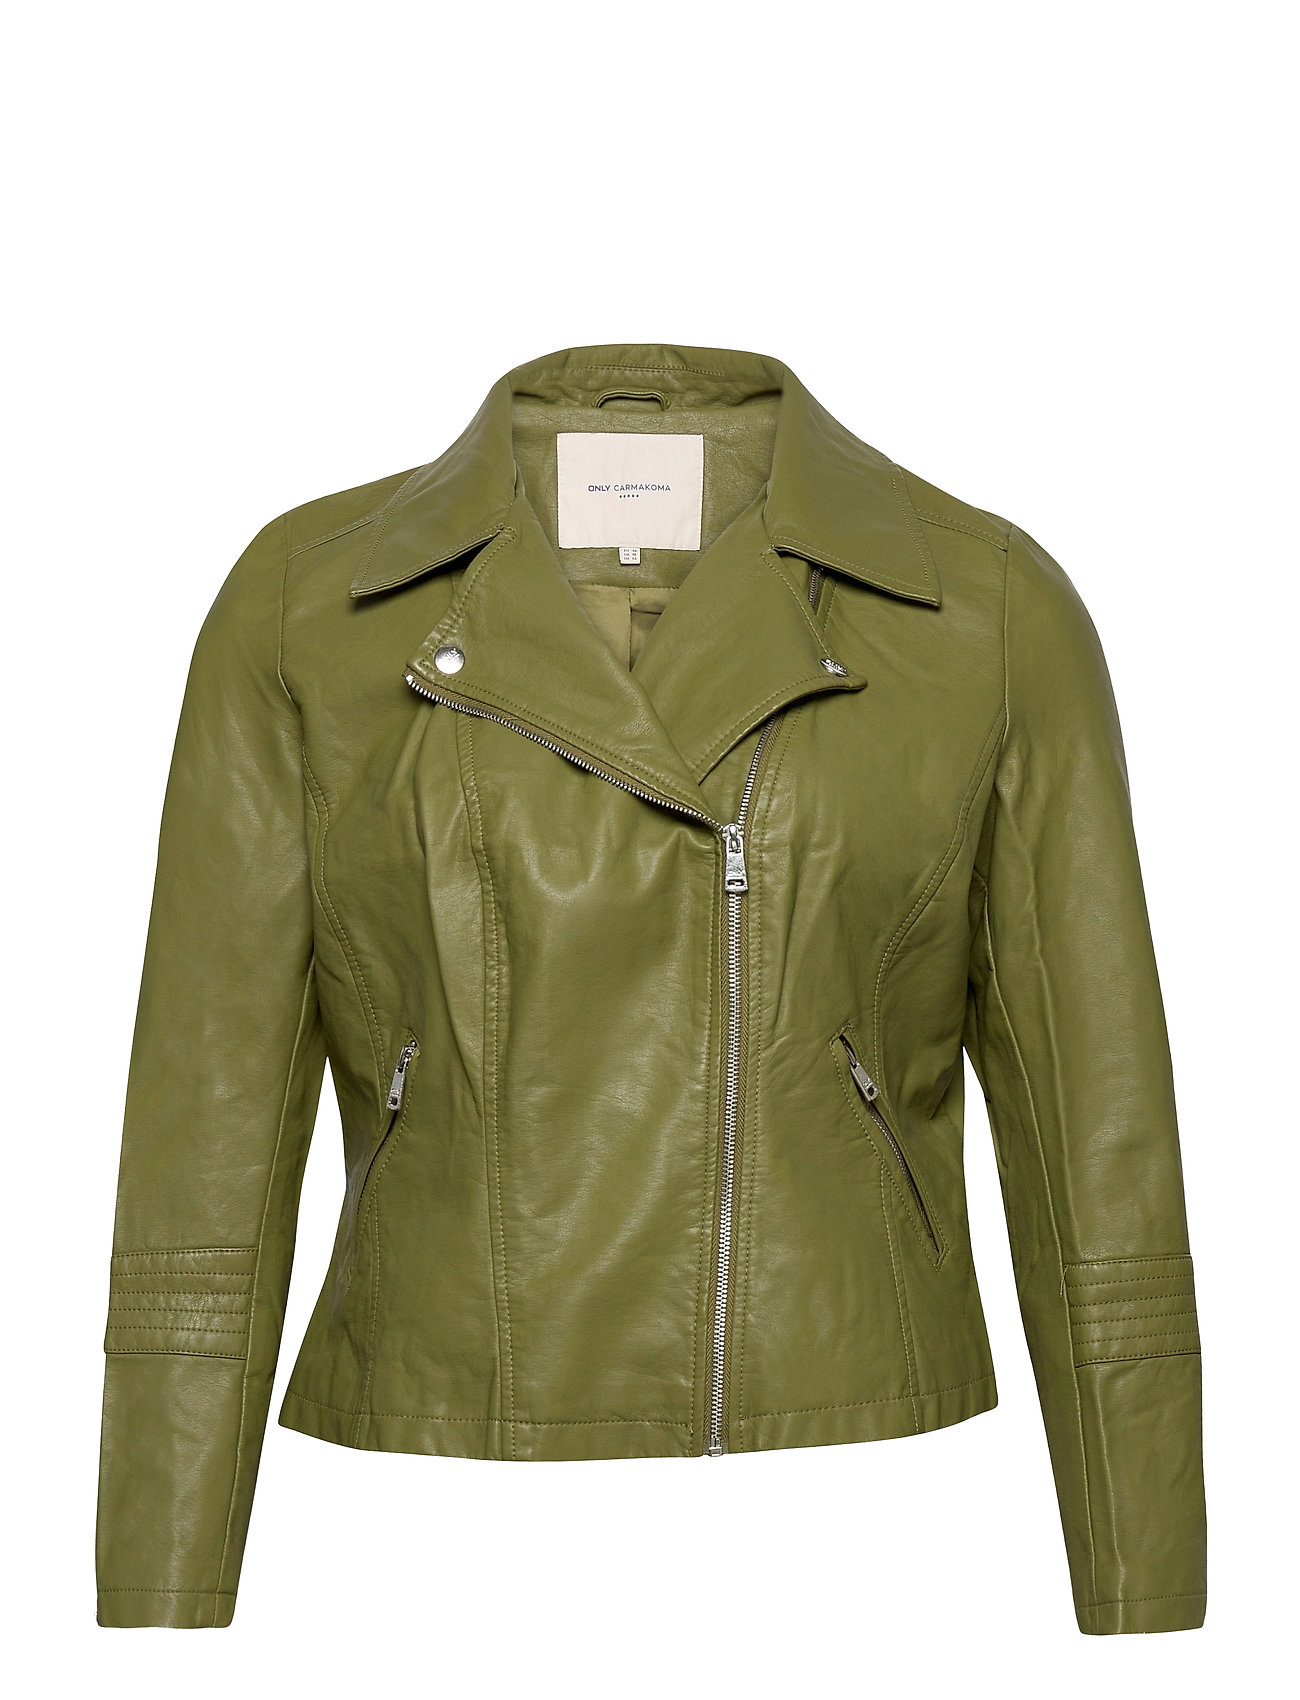 Image of Caremmy Faux Leather Biker Ess Læderjakke Skindjakke Grøn ONLY Carmakoma (3488472009)